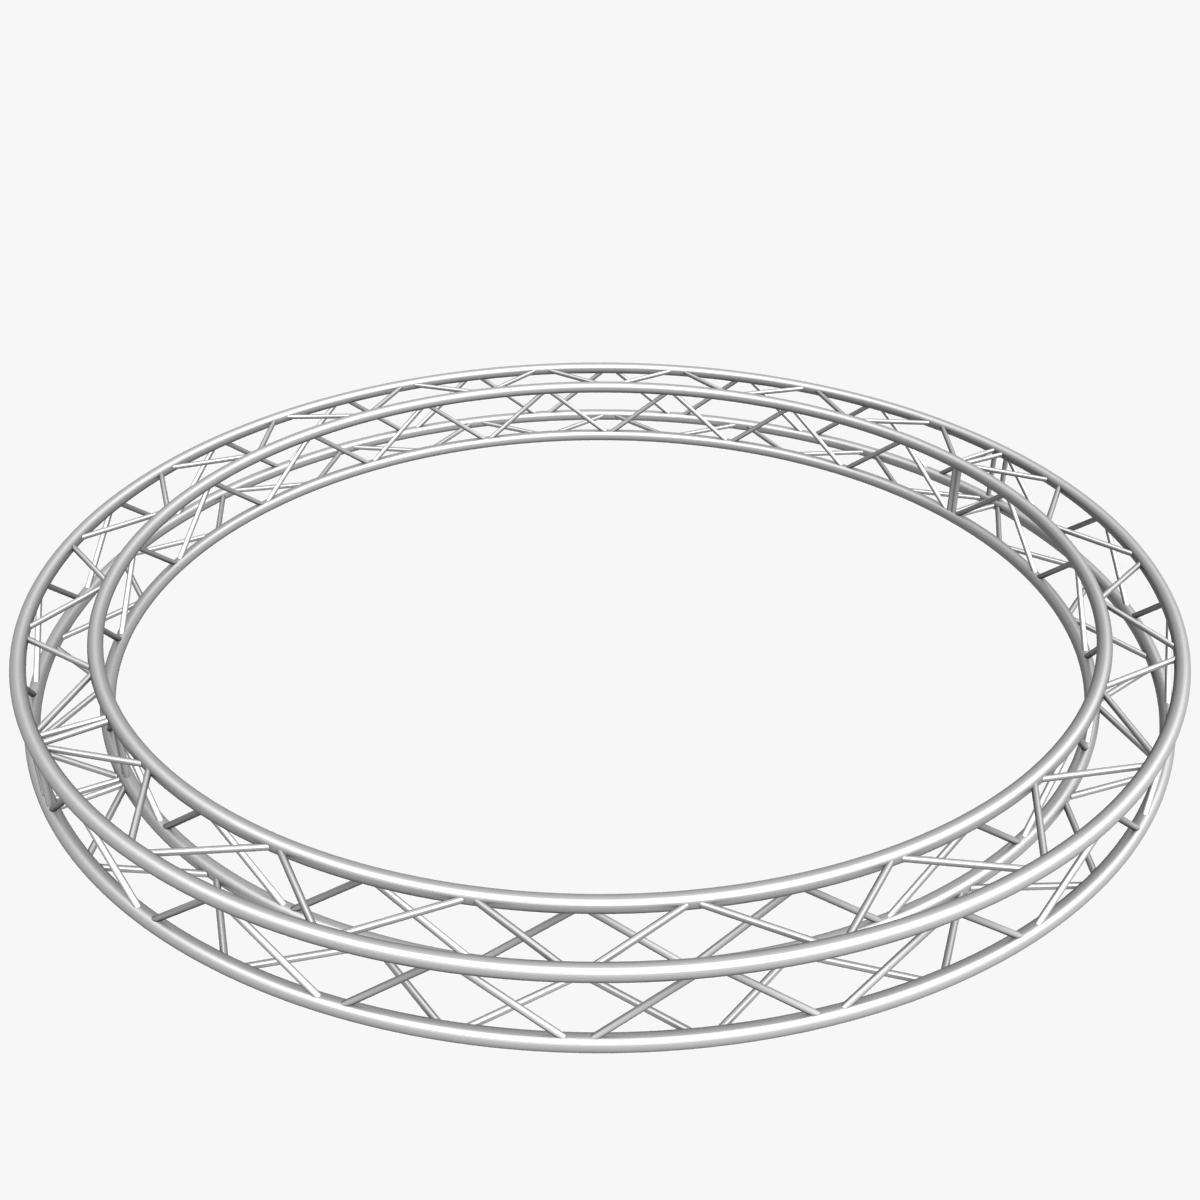 circle square truss (400cm) 3d model max fbx obj 218631